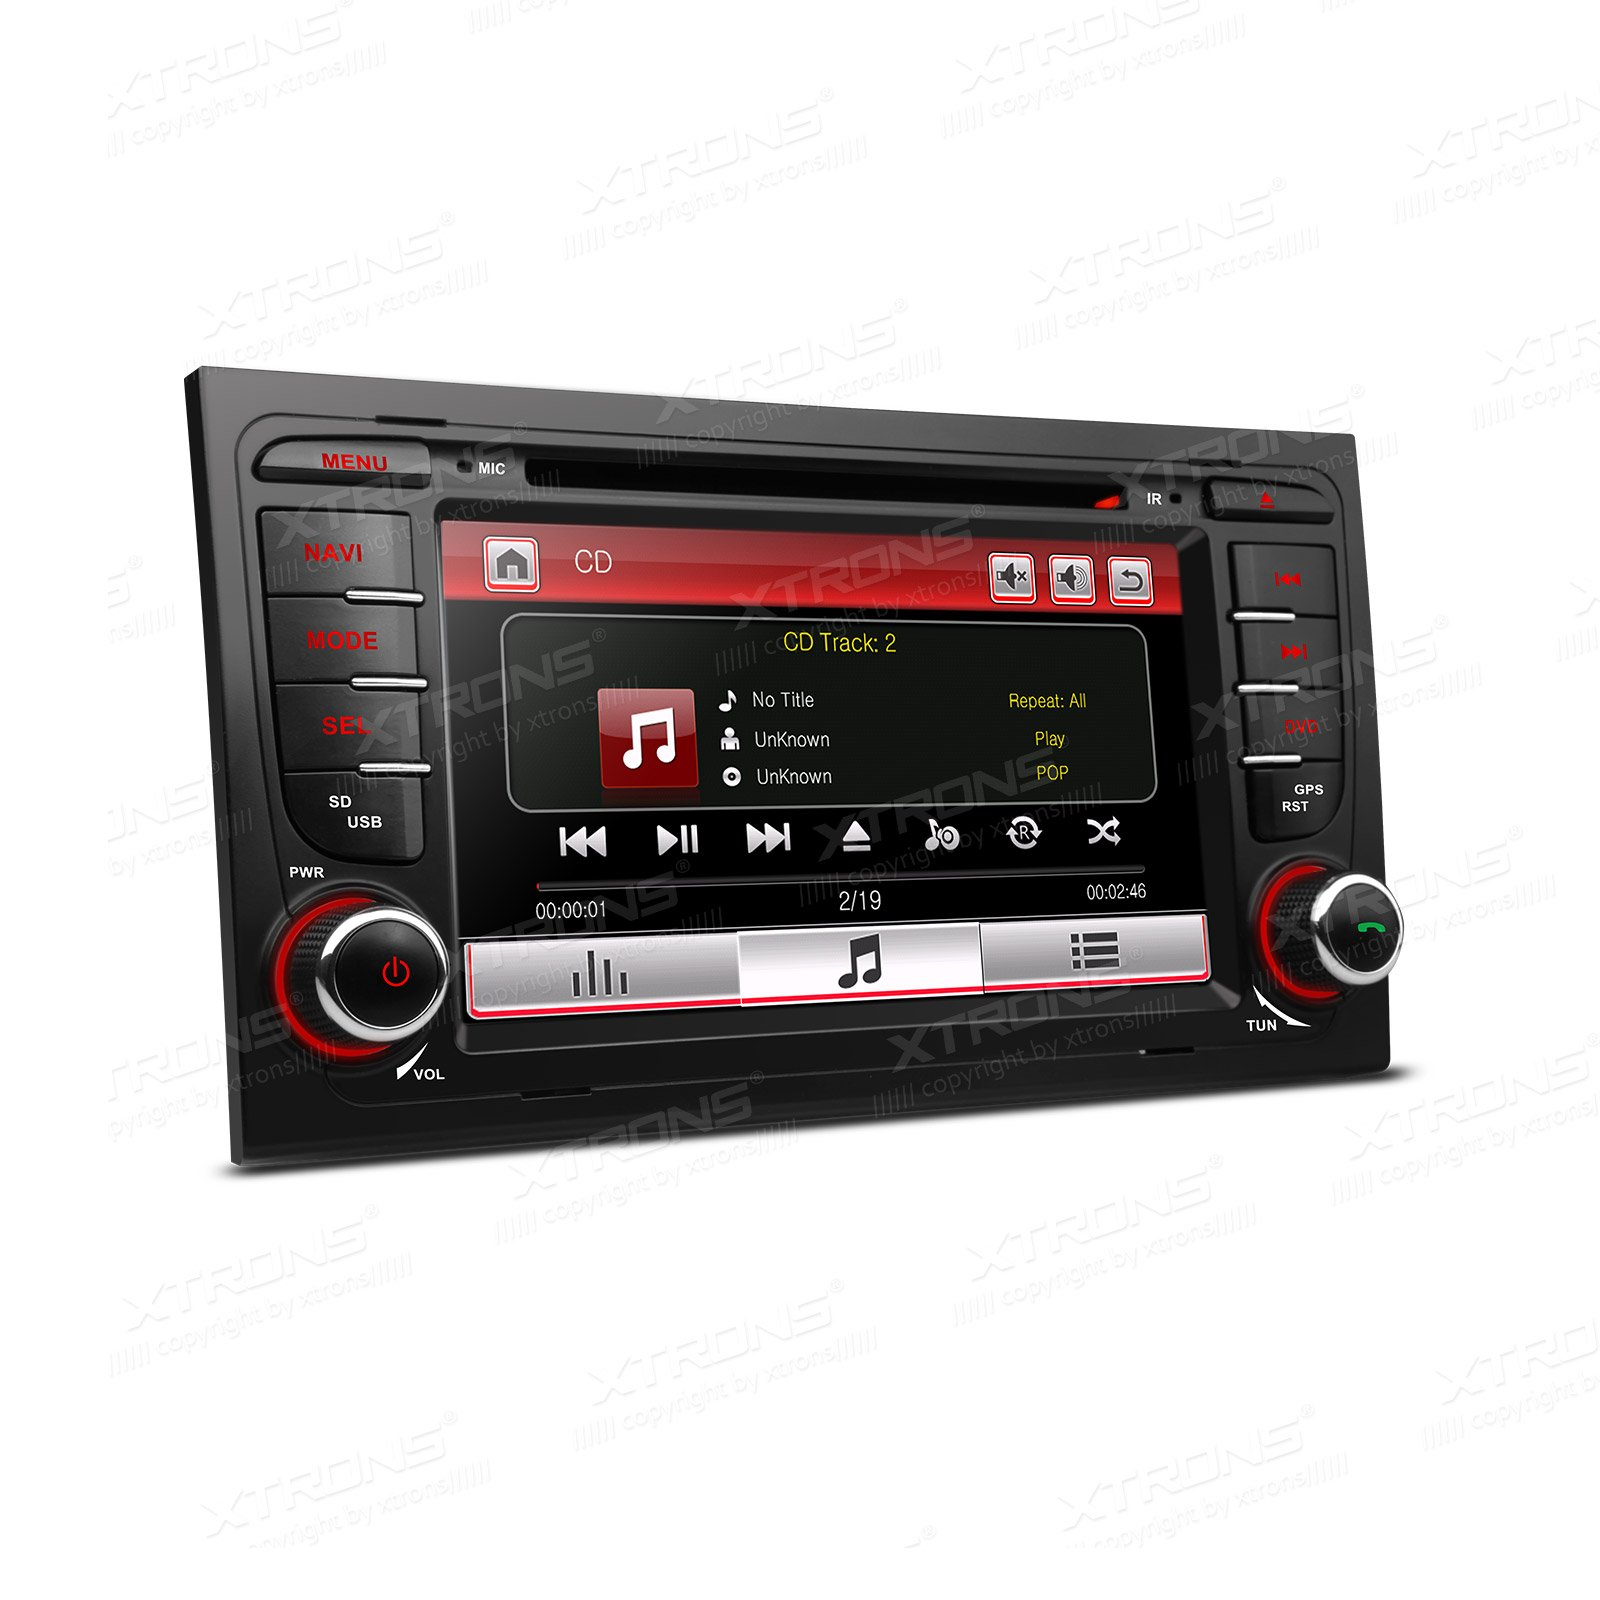 XTRONS 7 Inch HD Digital Touch Screen Car Stereo In-Dash DVD Player with GPS Navigation Dual Channel CANbus Screen Mirroring Function for Audi A4 S4 RS4 Kudos Map Card Included by XTRONS